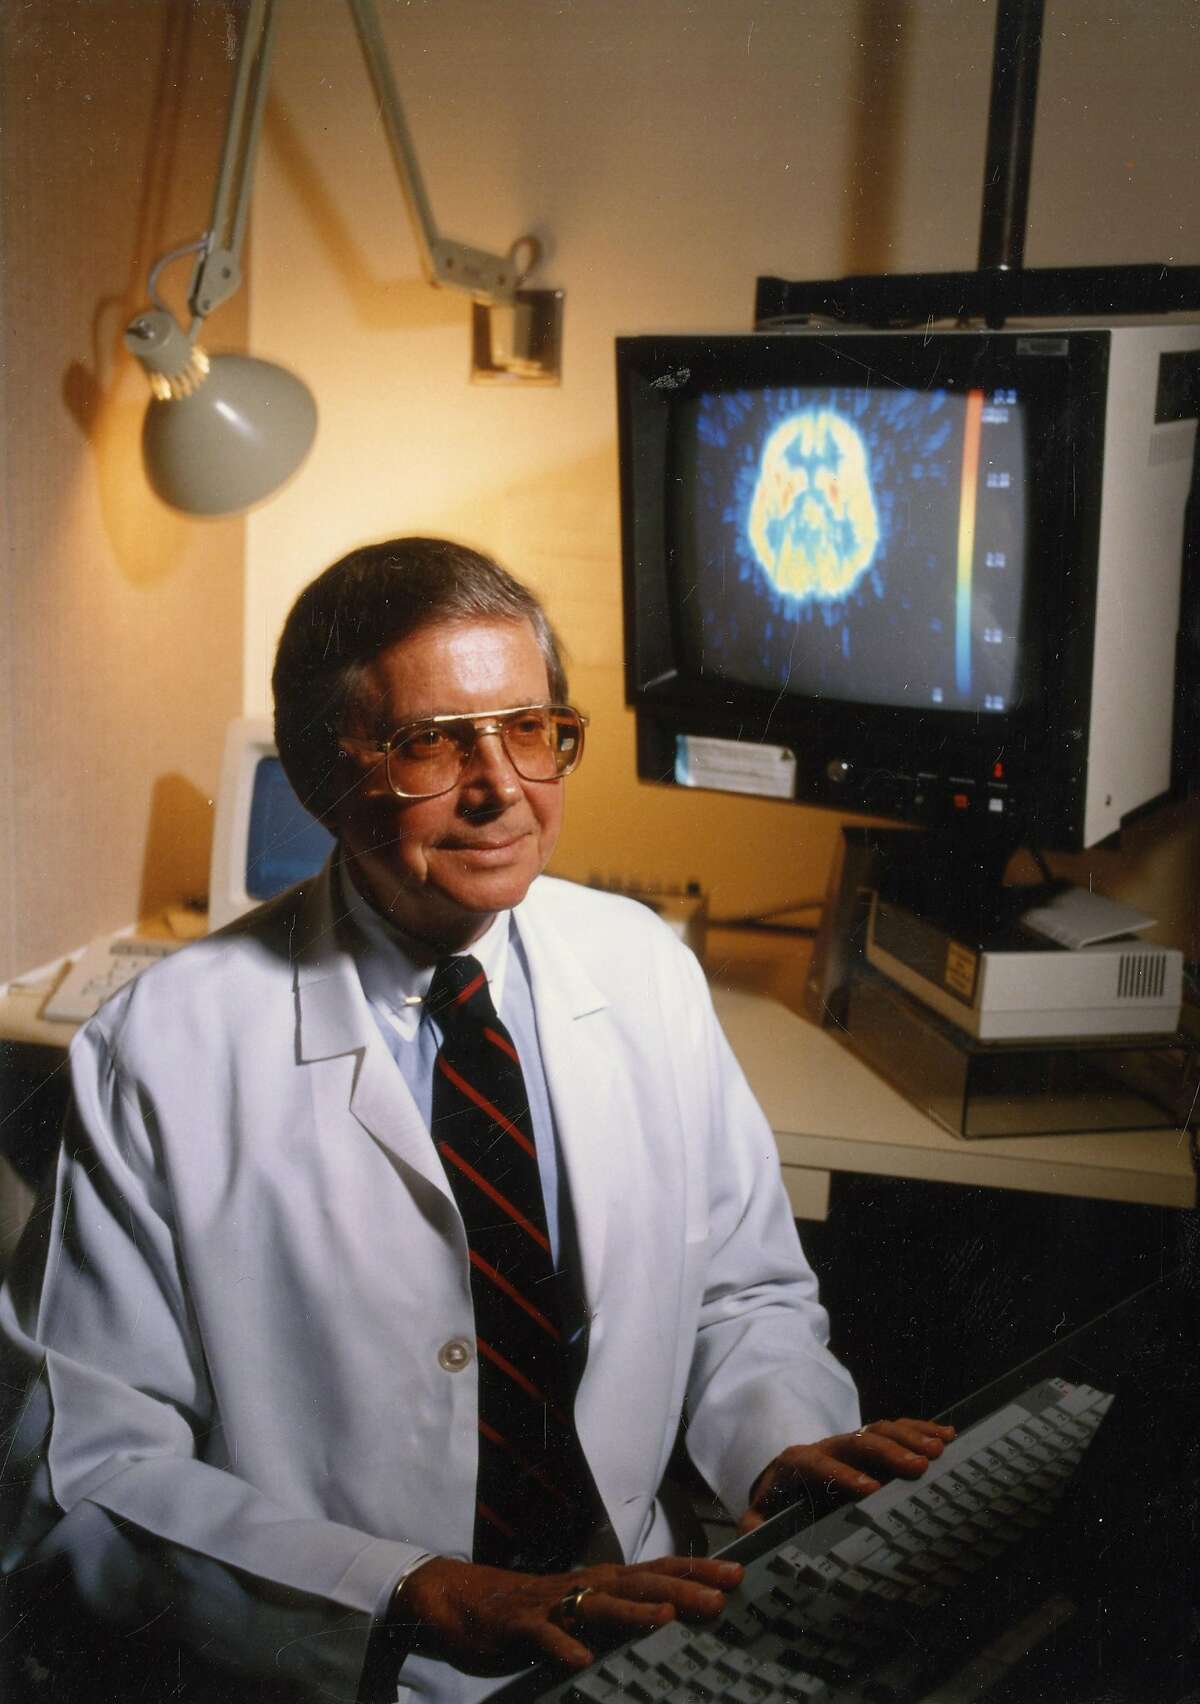 In a photo provided by the U.S. National Library of Medicine, Dr. Lewis Judd in the 1980s. Judd, who as the country's top mental health official helped put in place the so-called Decade of the Brain, an ambitious research agenda focused on brain biology as the key to understanding and treating psychiatric problems, died on Dec. 16, 2018 in San Diego. He was 88. (U.S. National Library of Medicine via The New York Times) -- NO SALES; FOR EDITORIAL USE ONLY WITH NYT STORY OBIT JUDD BY BENEDICT CAREY FOR JAN. 11, 2019. ALL OTHER USE PROHIBITED. --